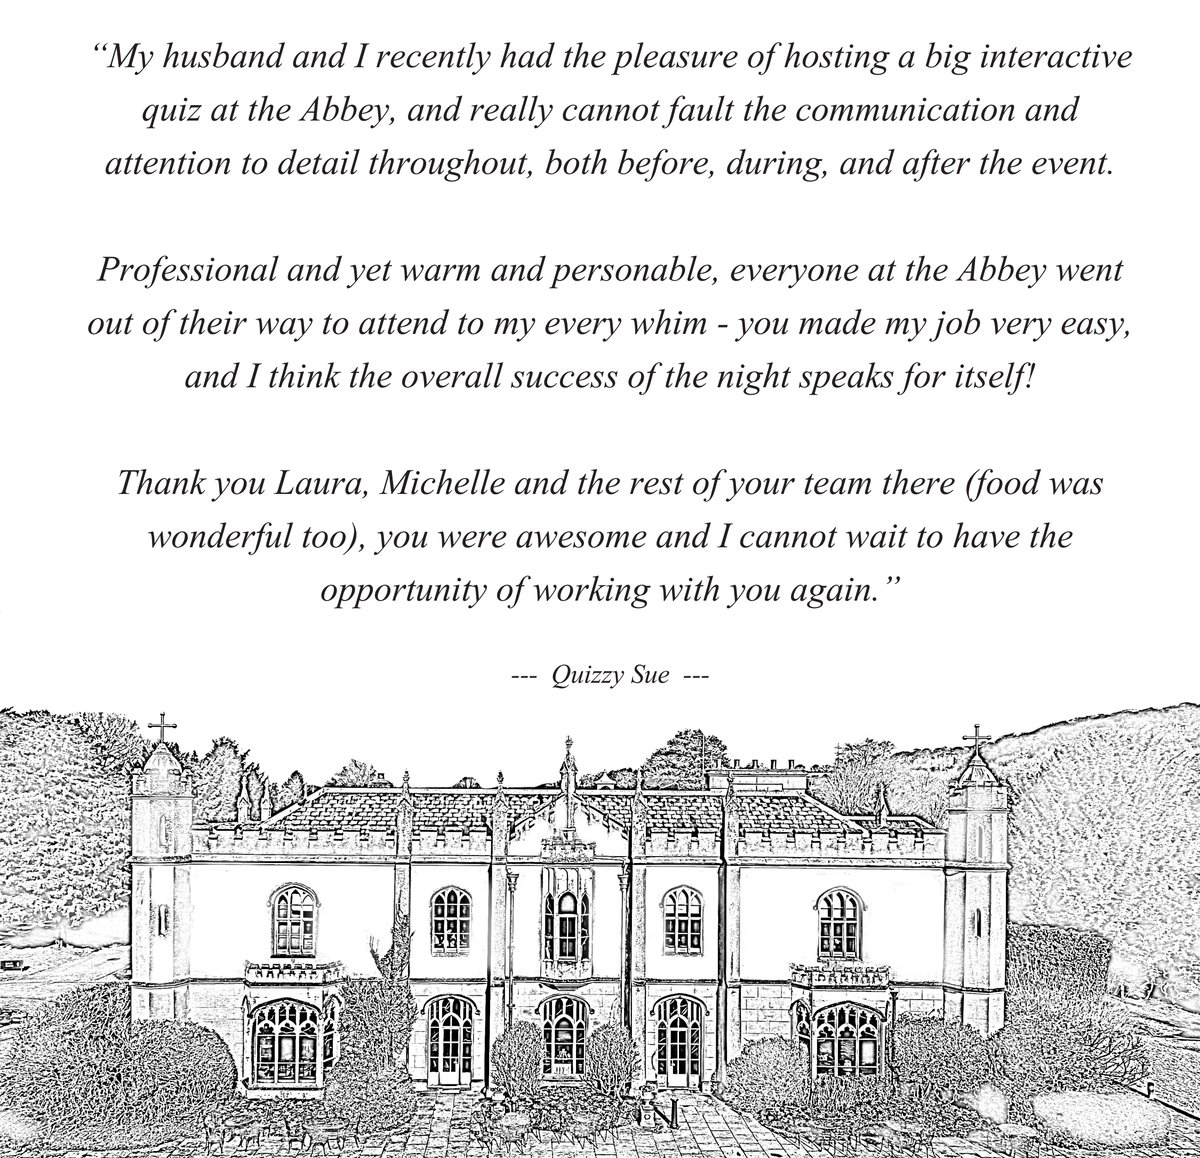 LOVELY REVIEW Thank you to Quizzy Sue for your lovely feedback from our Interactive Quiz Night.  #quiznight #missendenabbey #greatmissenden #quizzysue #interactivequiz #trivianight #quizpic.twitter.com/hBthbstdWh